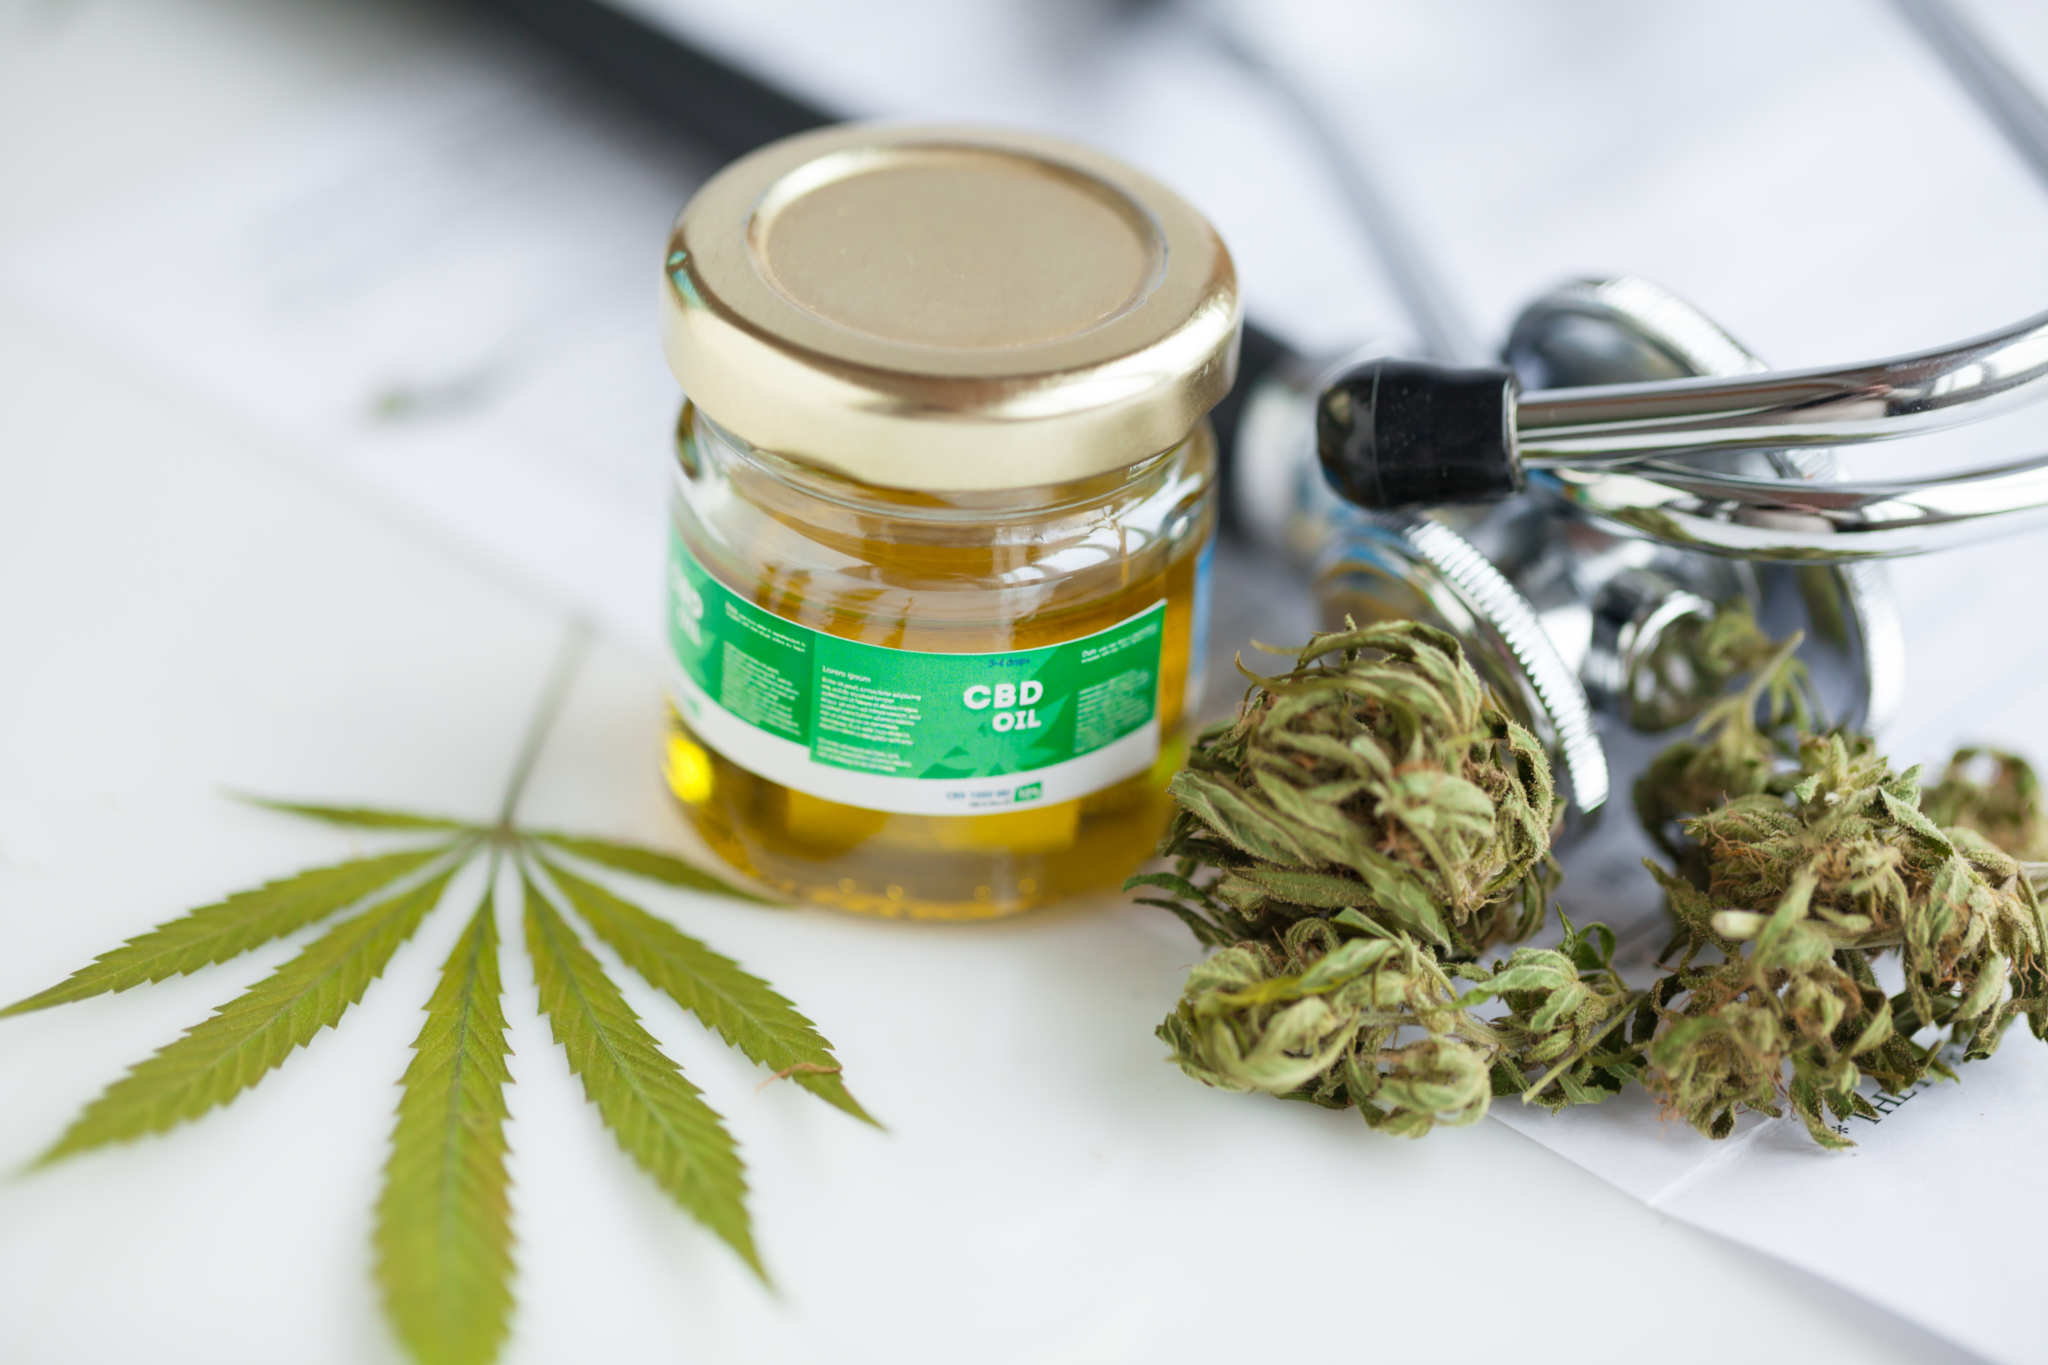 A stethoscope rests near a hemp leaf, some hemp flower buds, and a jar of CBD oil. Although CBD is widely recognized as safe, many medical professionals are still reluctant to recommend it. Patients are often forced to research CBD for themselves.